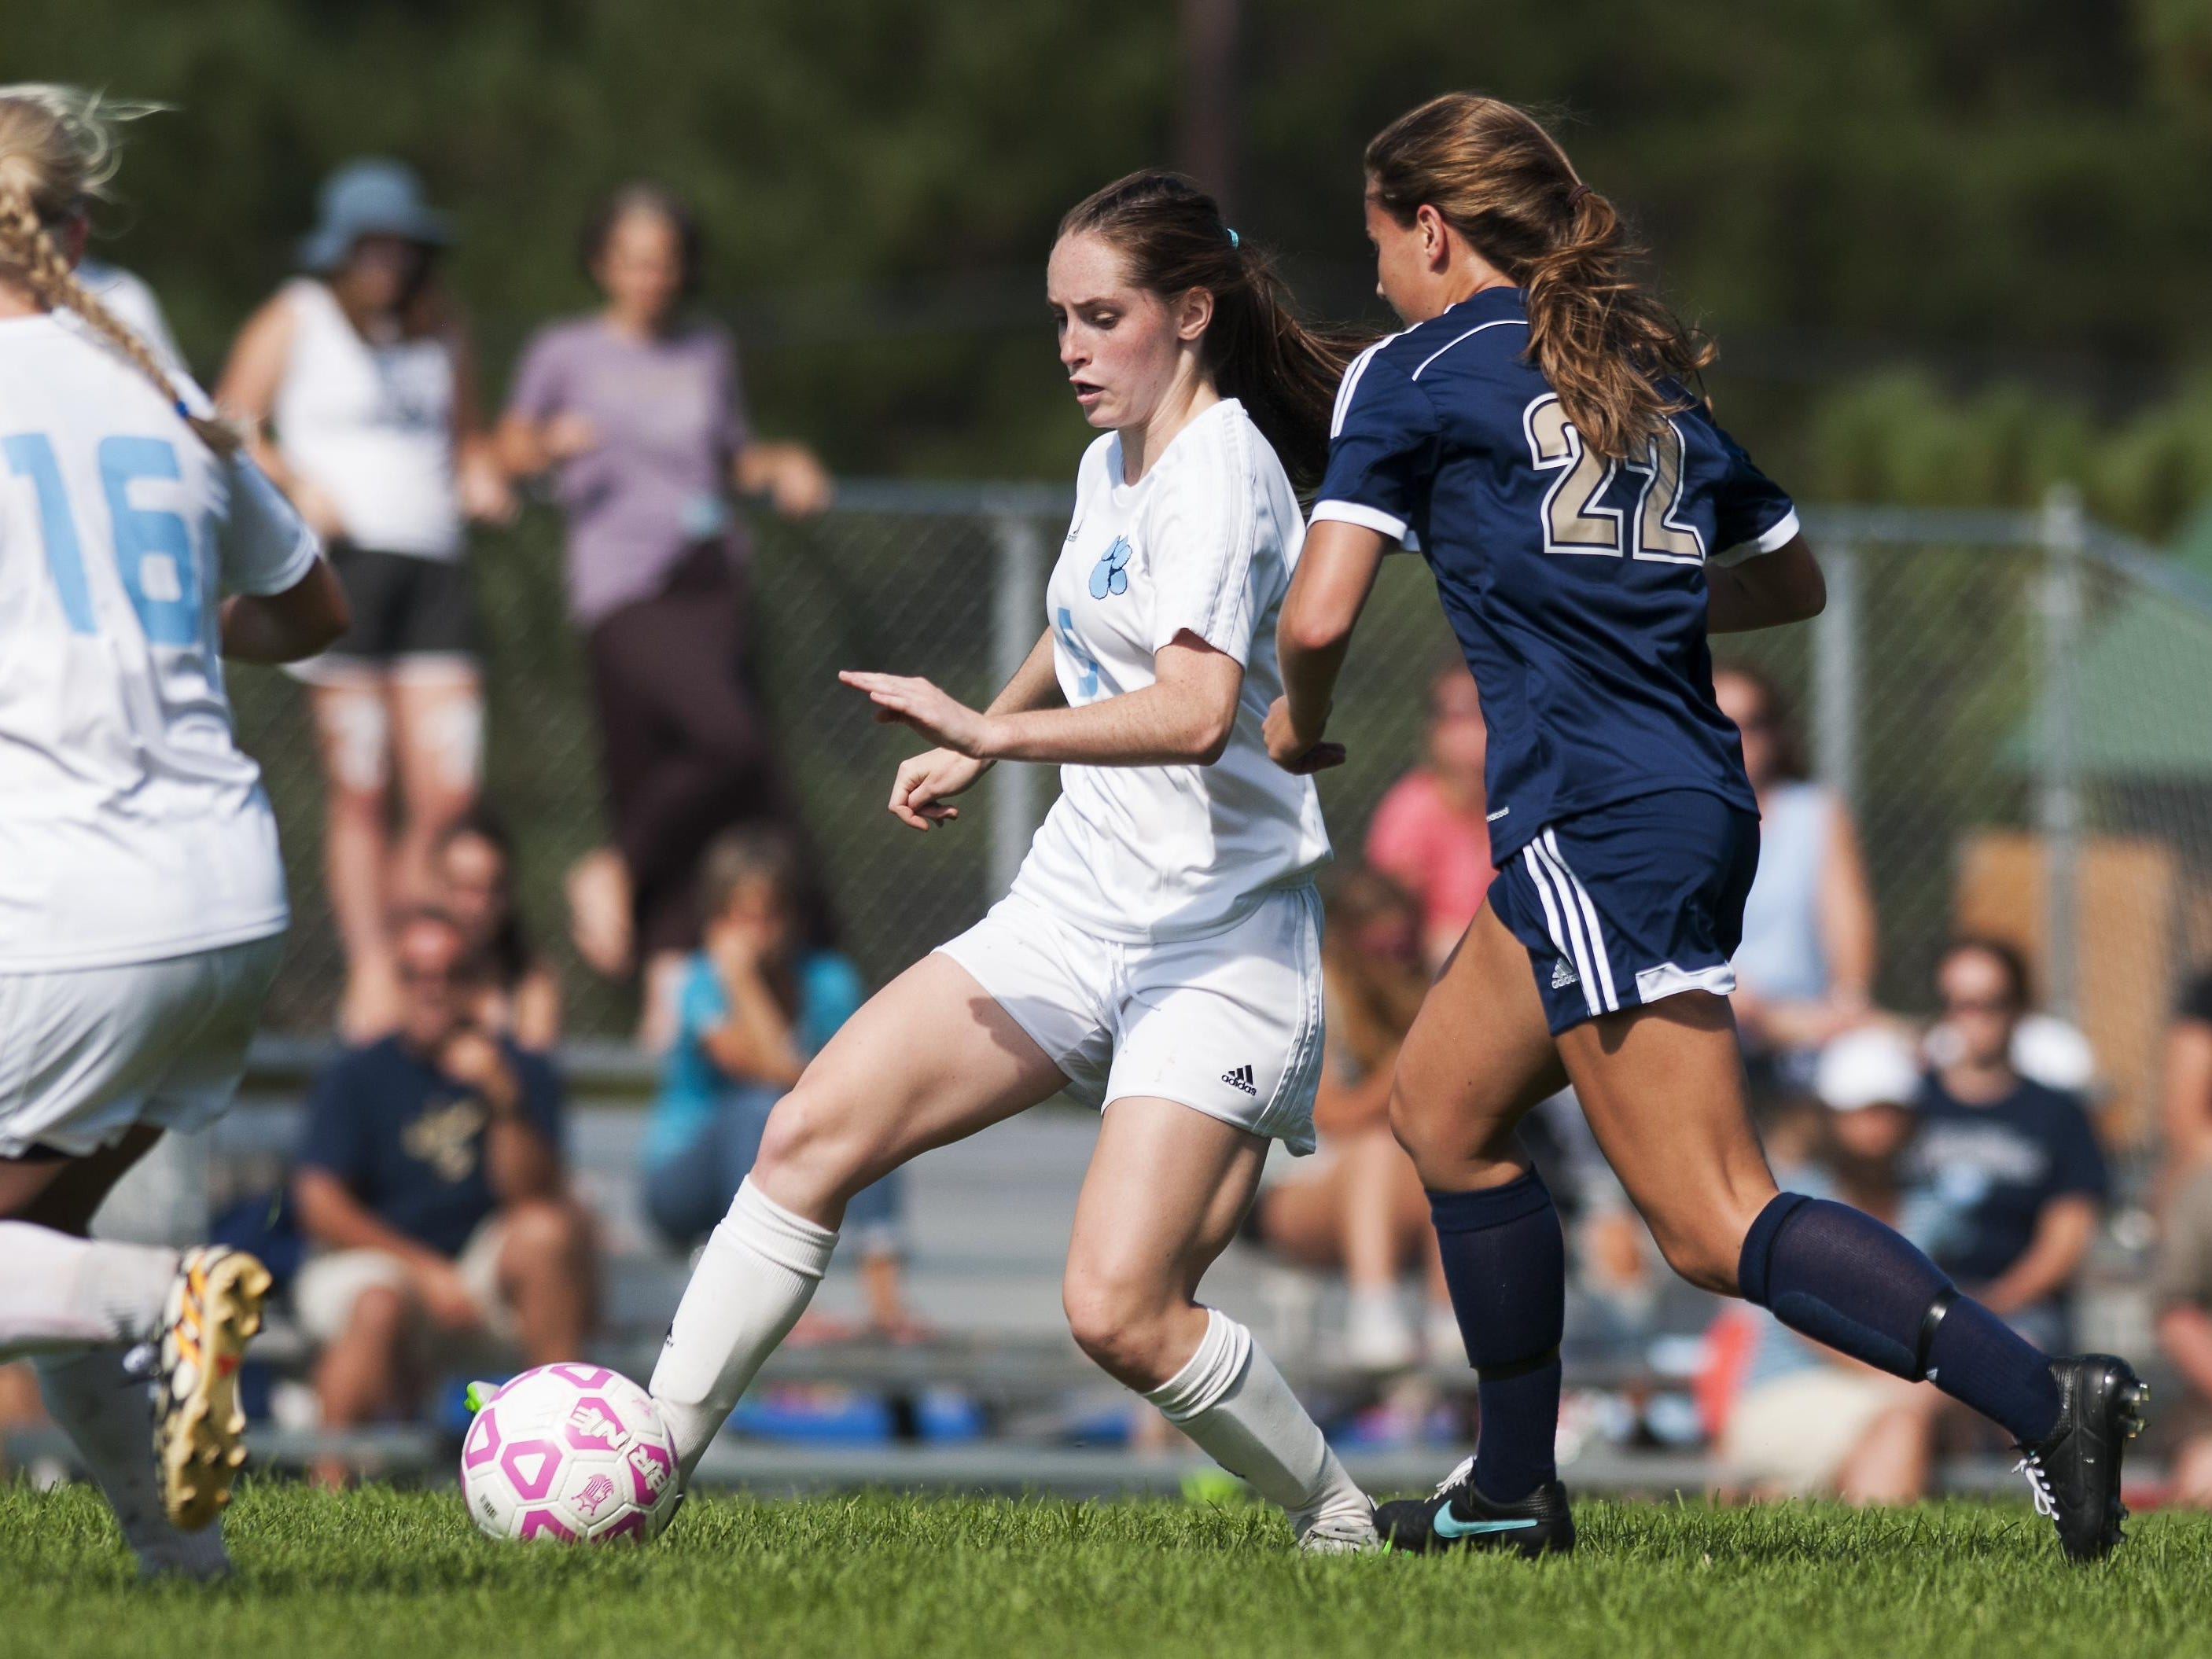 MMU's Molly Finn (5) runs past Essex's Jessica Poratti (22) with the ball during the girls soccer game between the Essex Hornets and the Mount Mansfield Cougars on Saturday in Jericho.